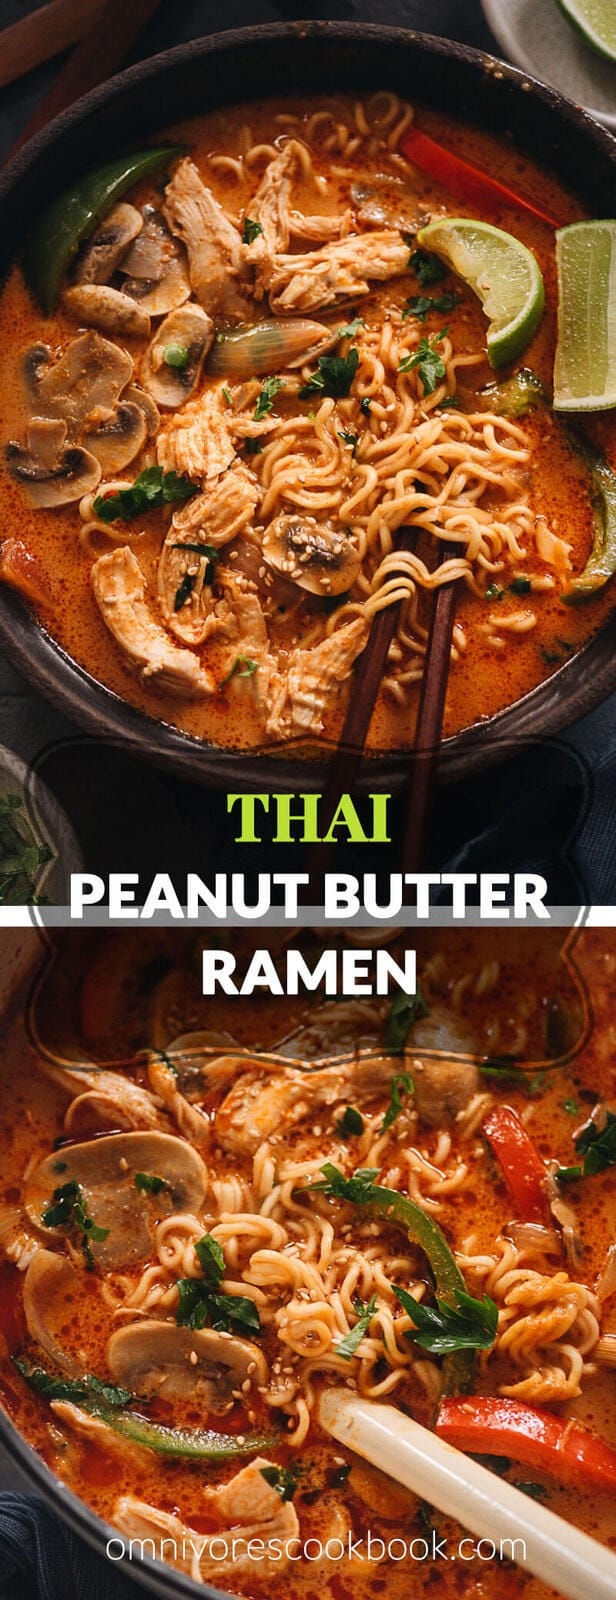 This Thai peanut butter ramen is a perfect dish for your weekday dinner. The tender noodles, juicy chicken and colorful veggies are soaked in a rich broth that is nutty, savory, spicy and sweet. It's so easy to make and you can easily make it into a vegan version as well.